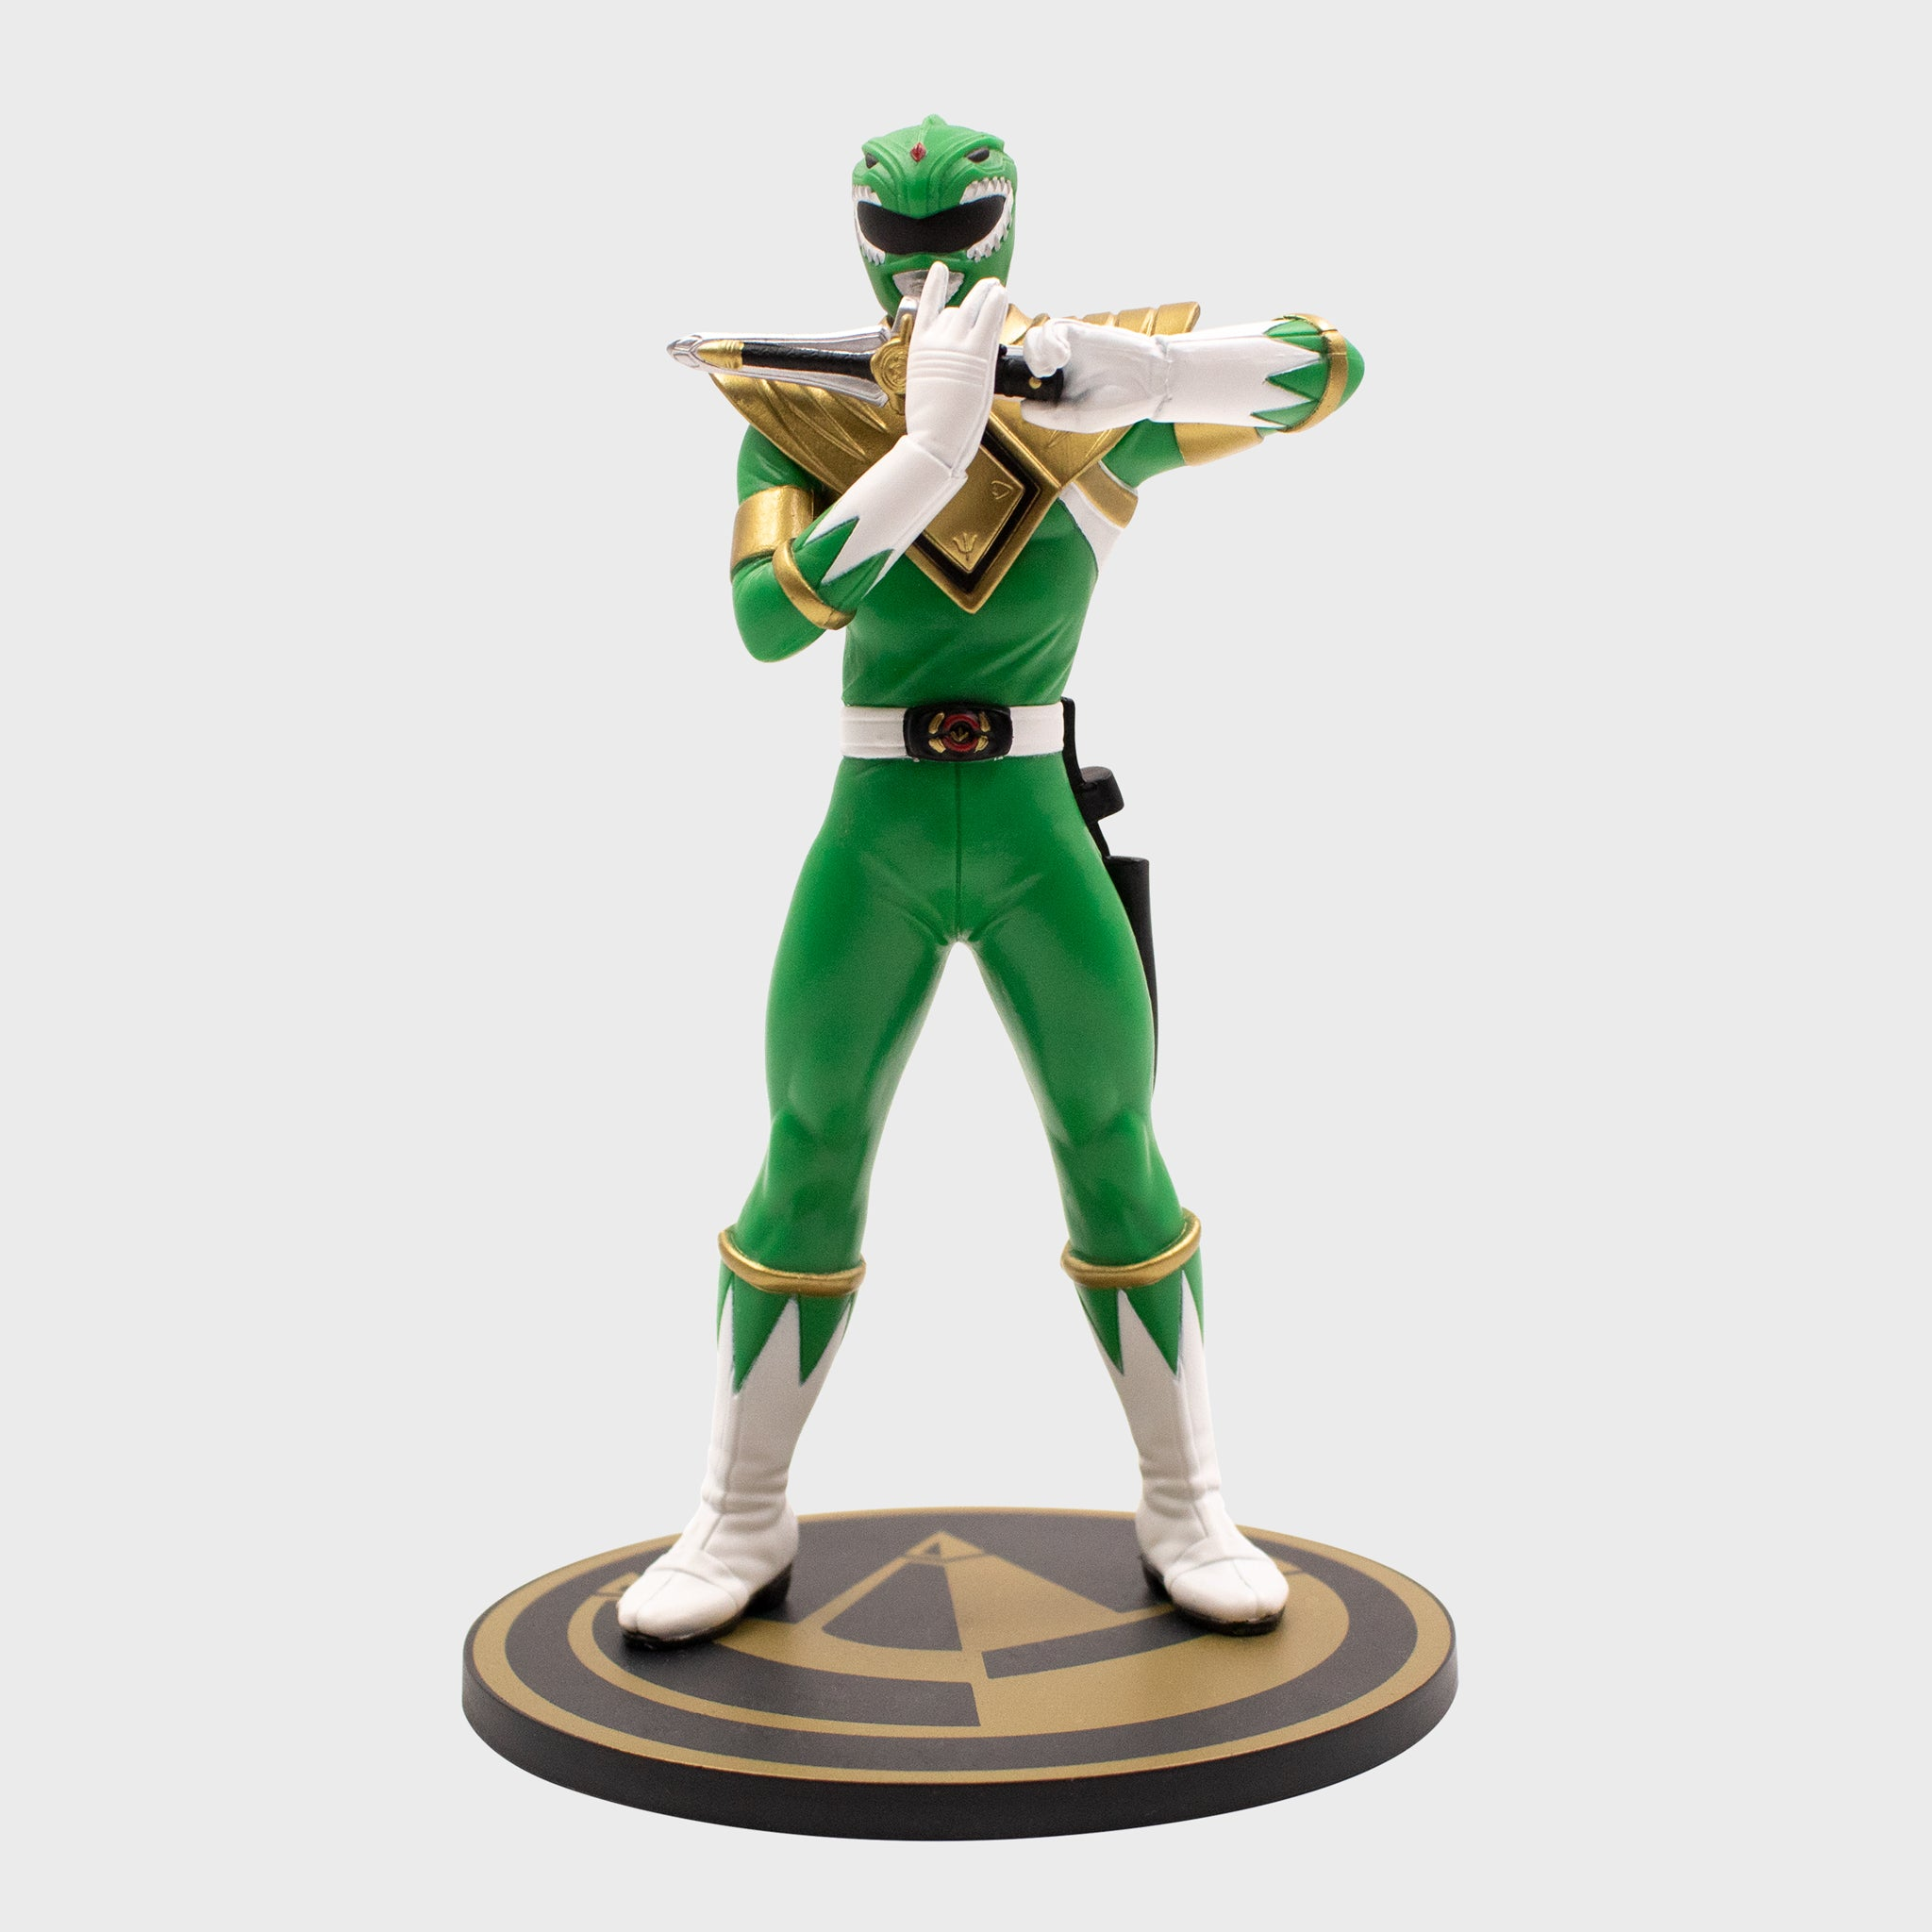 power rangers mighty morphin mmpr 90s kids green ranger exclusive gamestop retail box collectibles culturefly vinyl figure